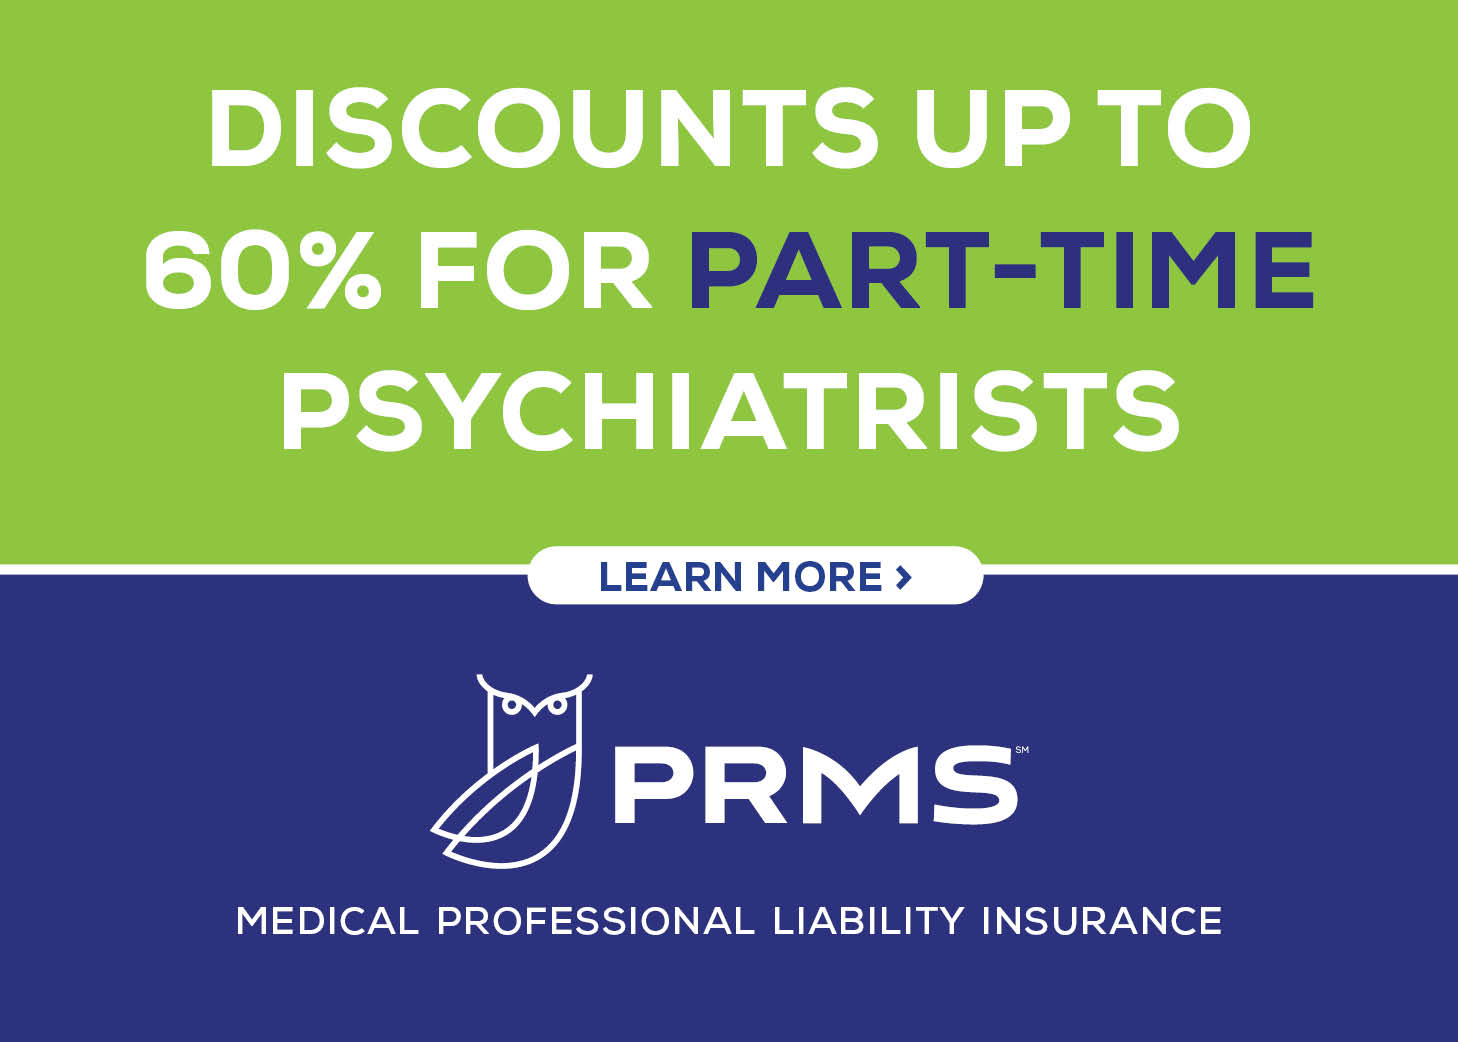 Discounts up to 60% for part-time psychiatrists